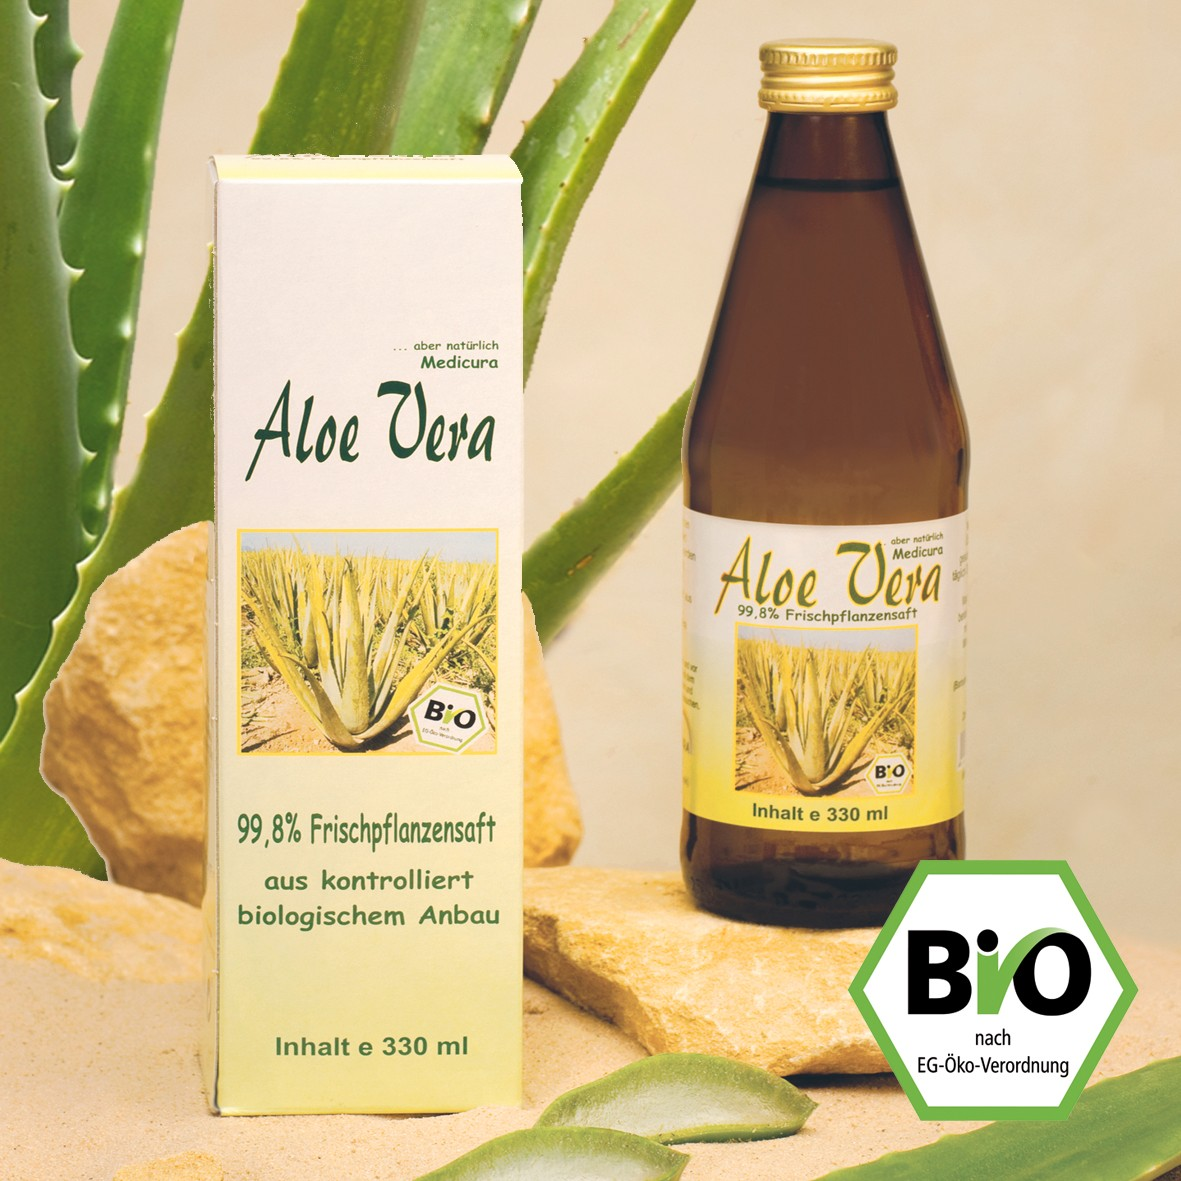 aloe vera zentrum bio aloe frischpflanzensaft 100 aloe vera saft produkte. Black Bedroom Furniture Sets. Home Design Ideas